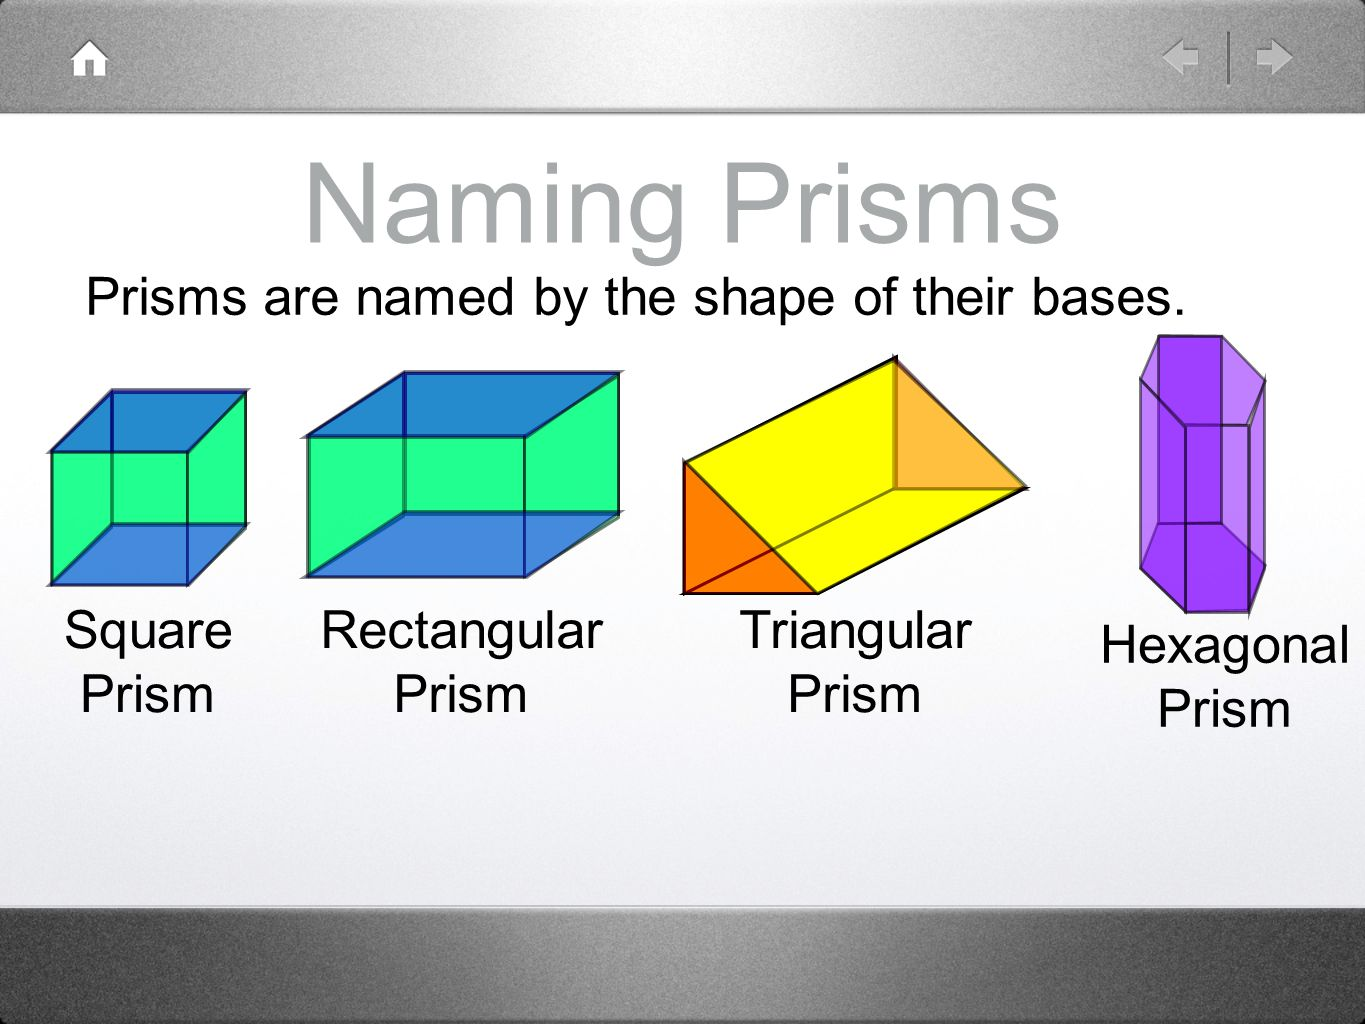 Naming Prisms Prisms are named by the shape of their bases. Square Prism Rectangular Prism Triangular Prism Hexagonal Prism